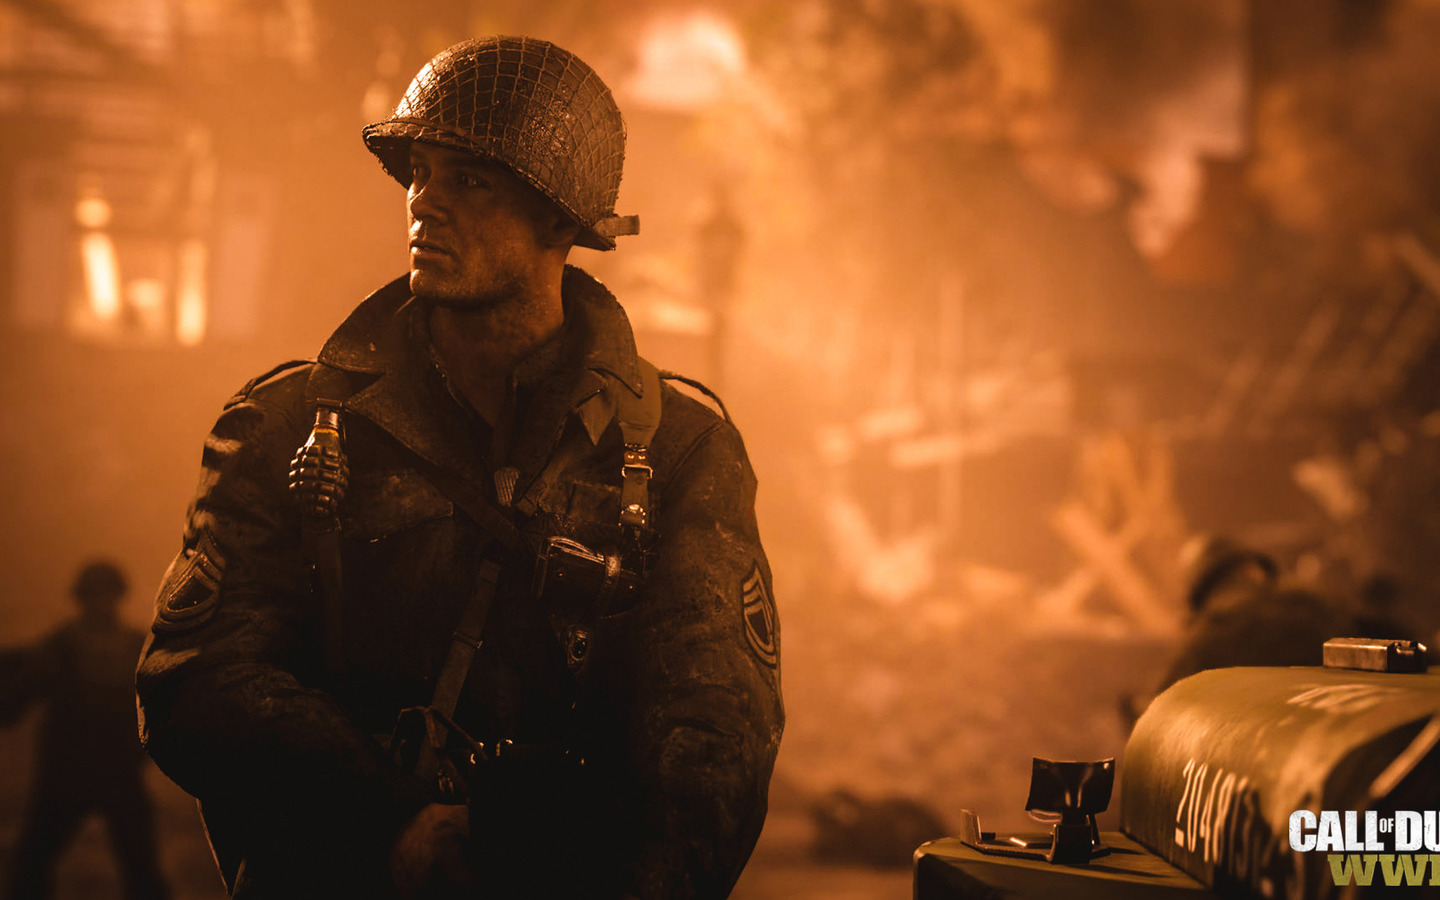 call-of-duty-wwii-soldier-fr.jpg